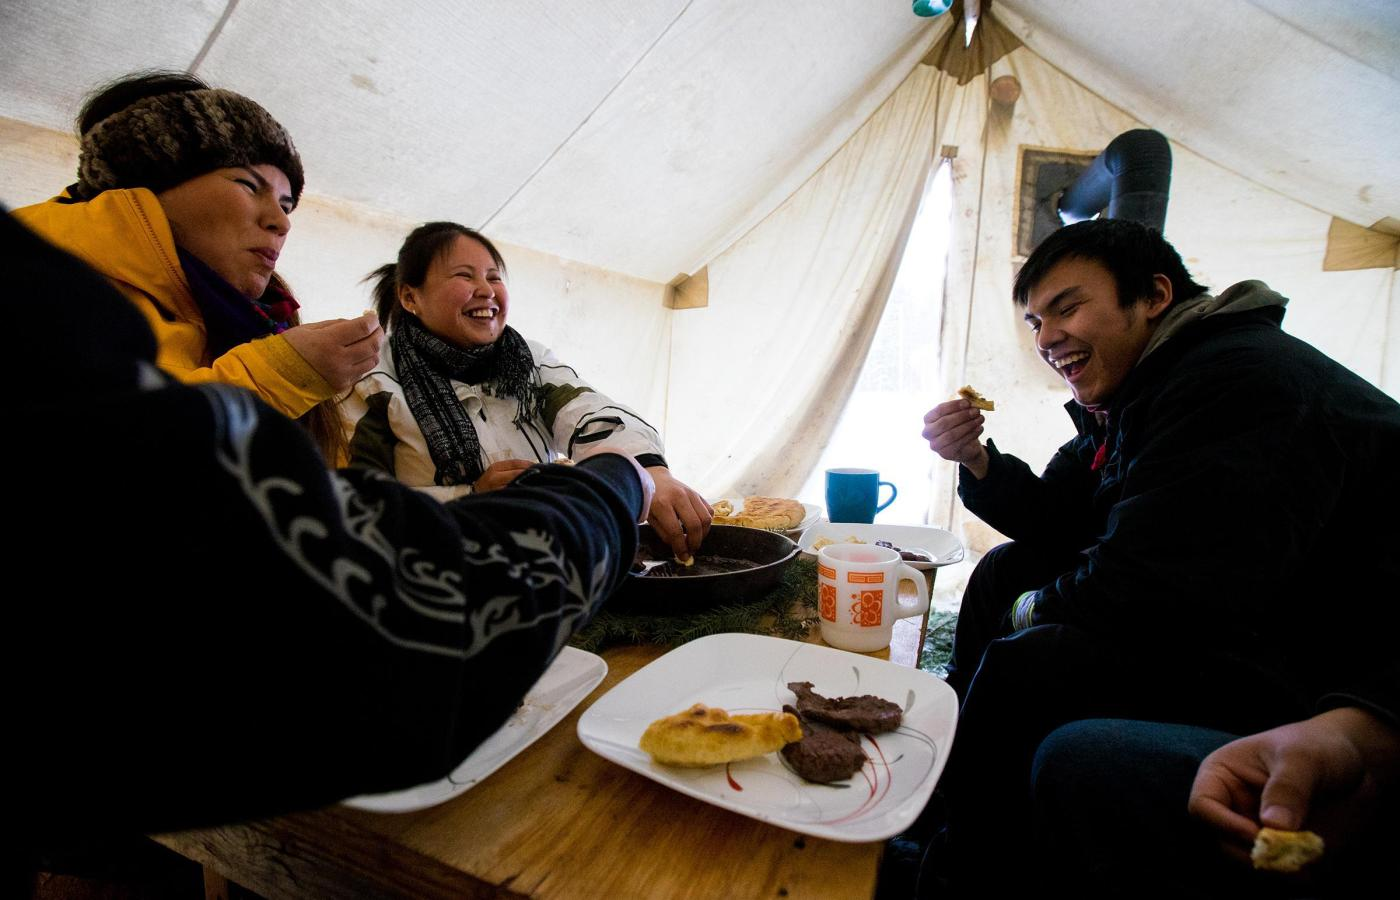 Eating bannock in a wall tent in a Dene camp near Nahanni Butte